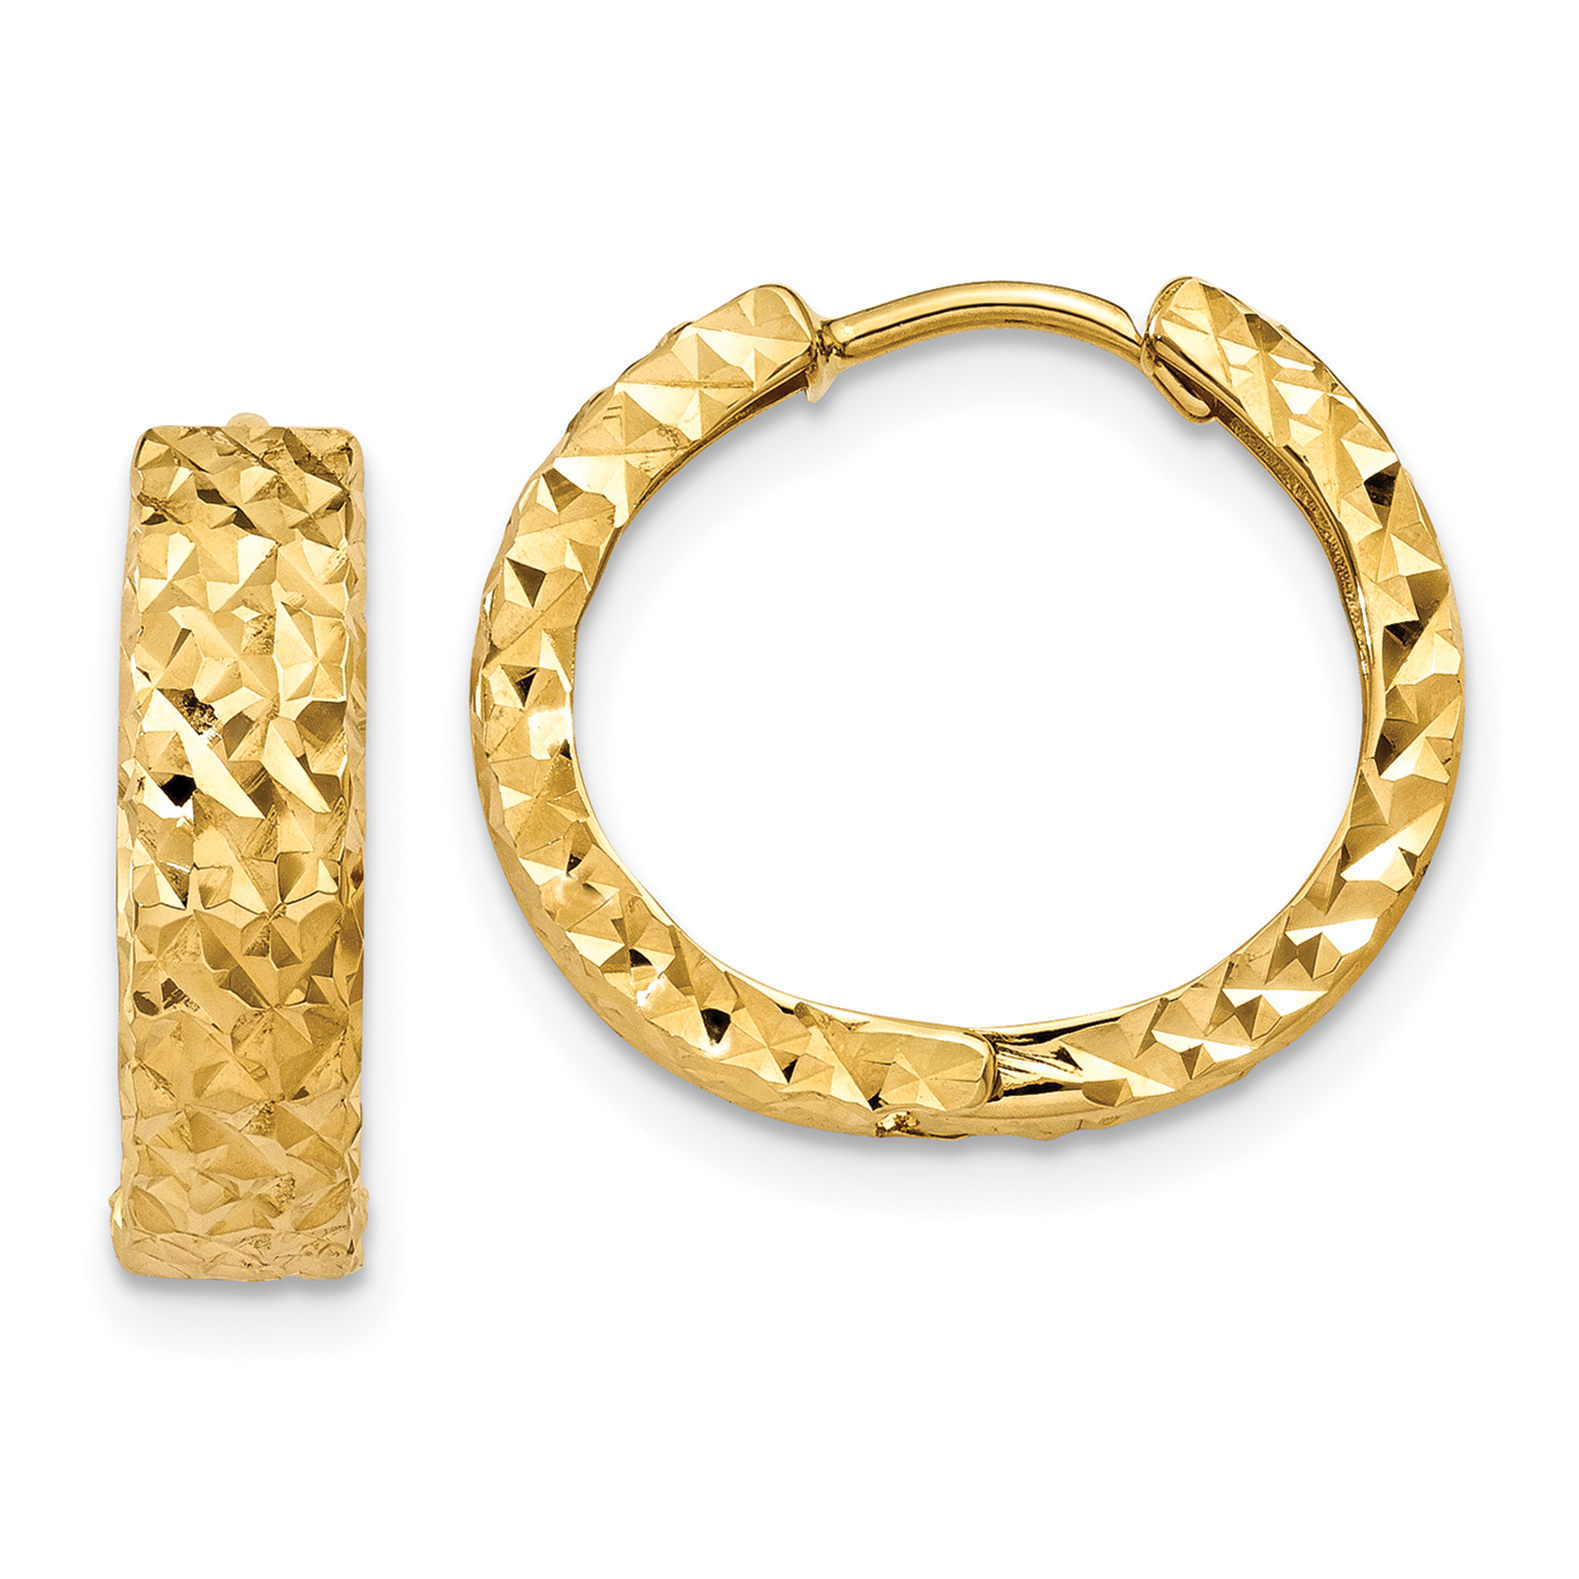 14K Yellow Gold Diamond Cut Hinged Hoop Earrings - image 4 of 4